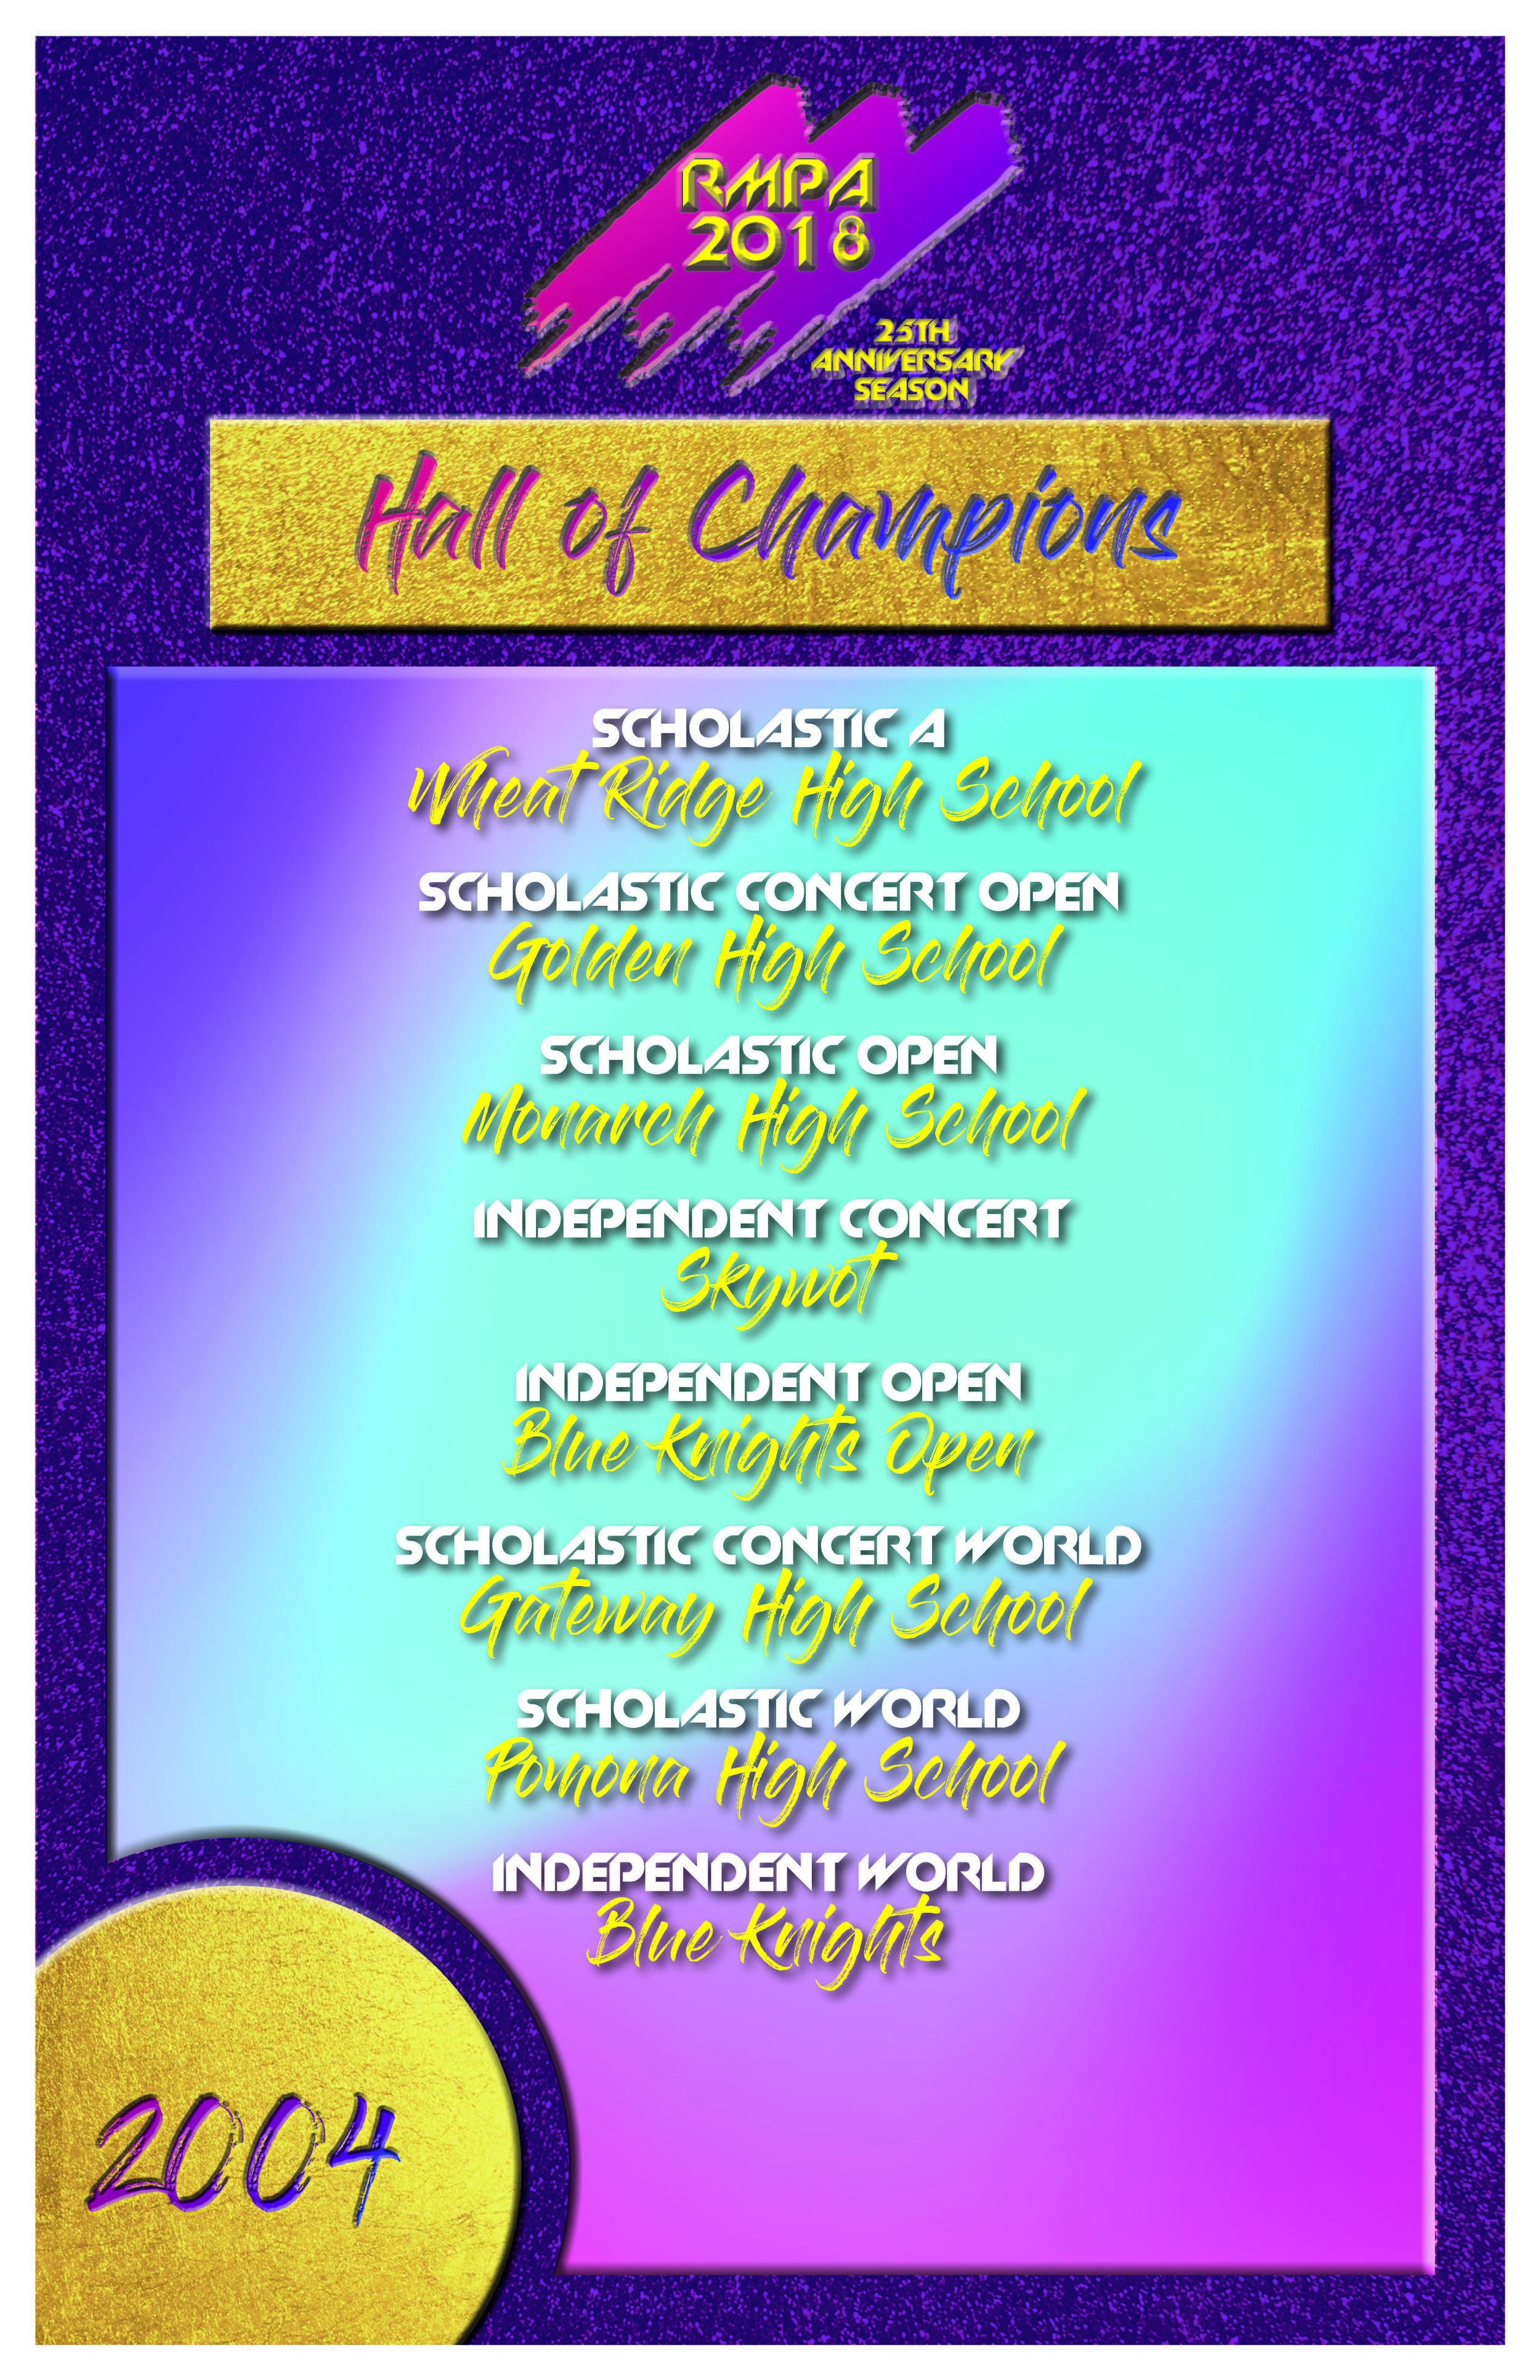 Hall of Champions Posters_Page_12.jpg